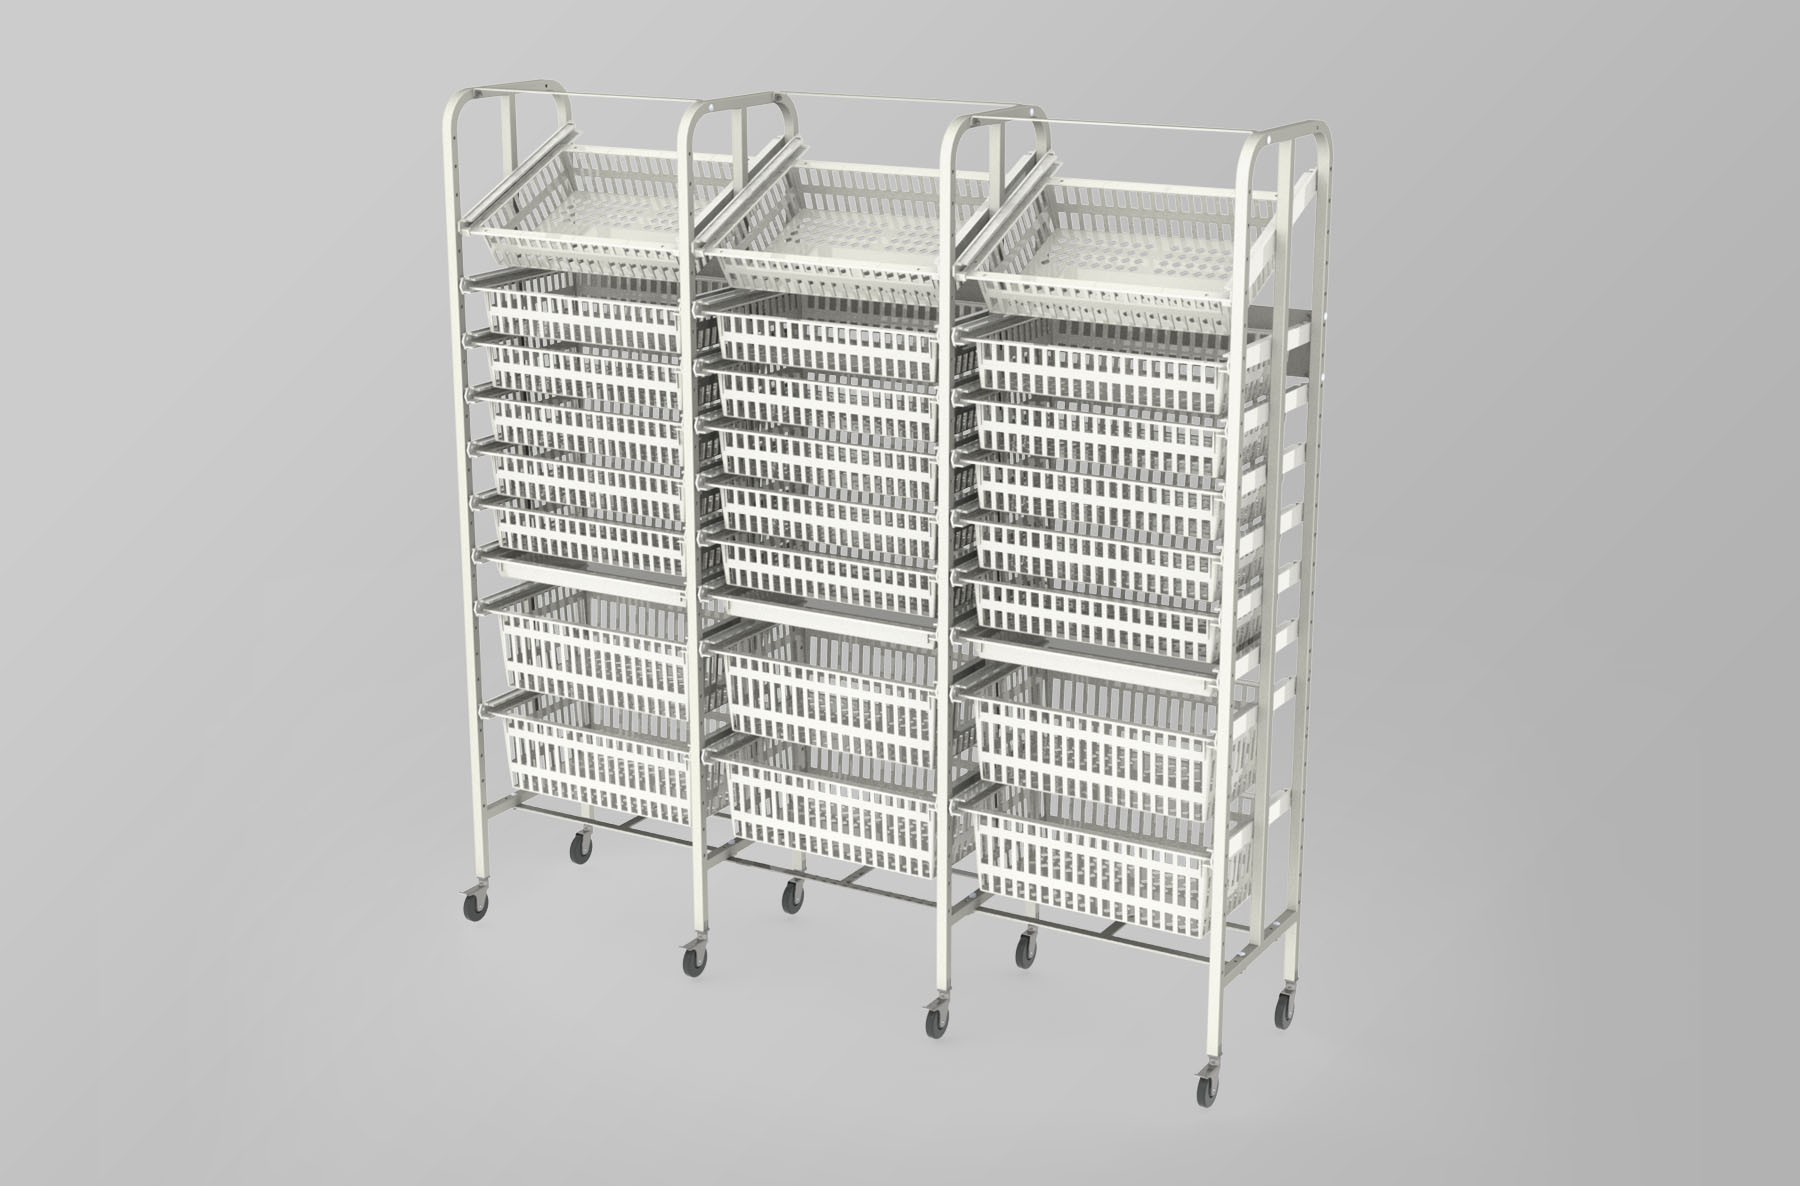 Medical Supply Storage-3 Column-9 High (Wide)